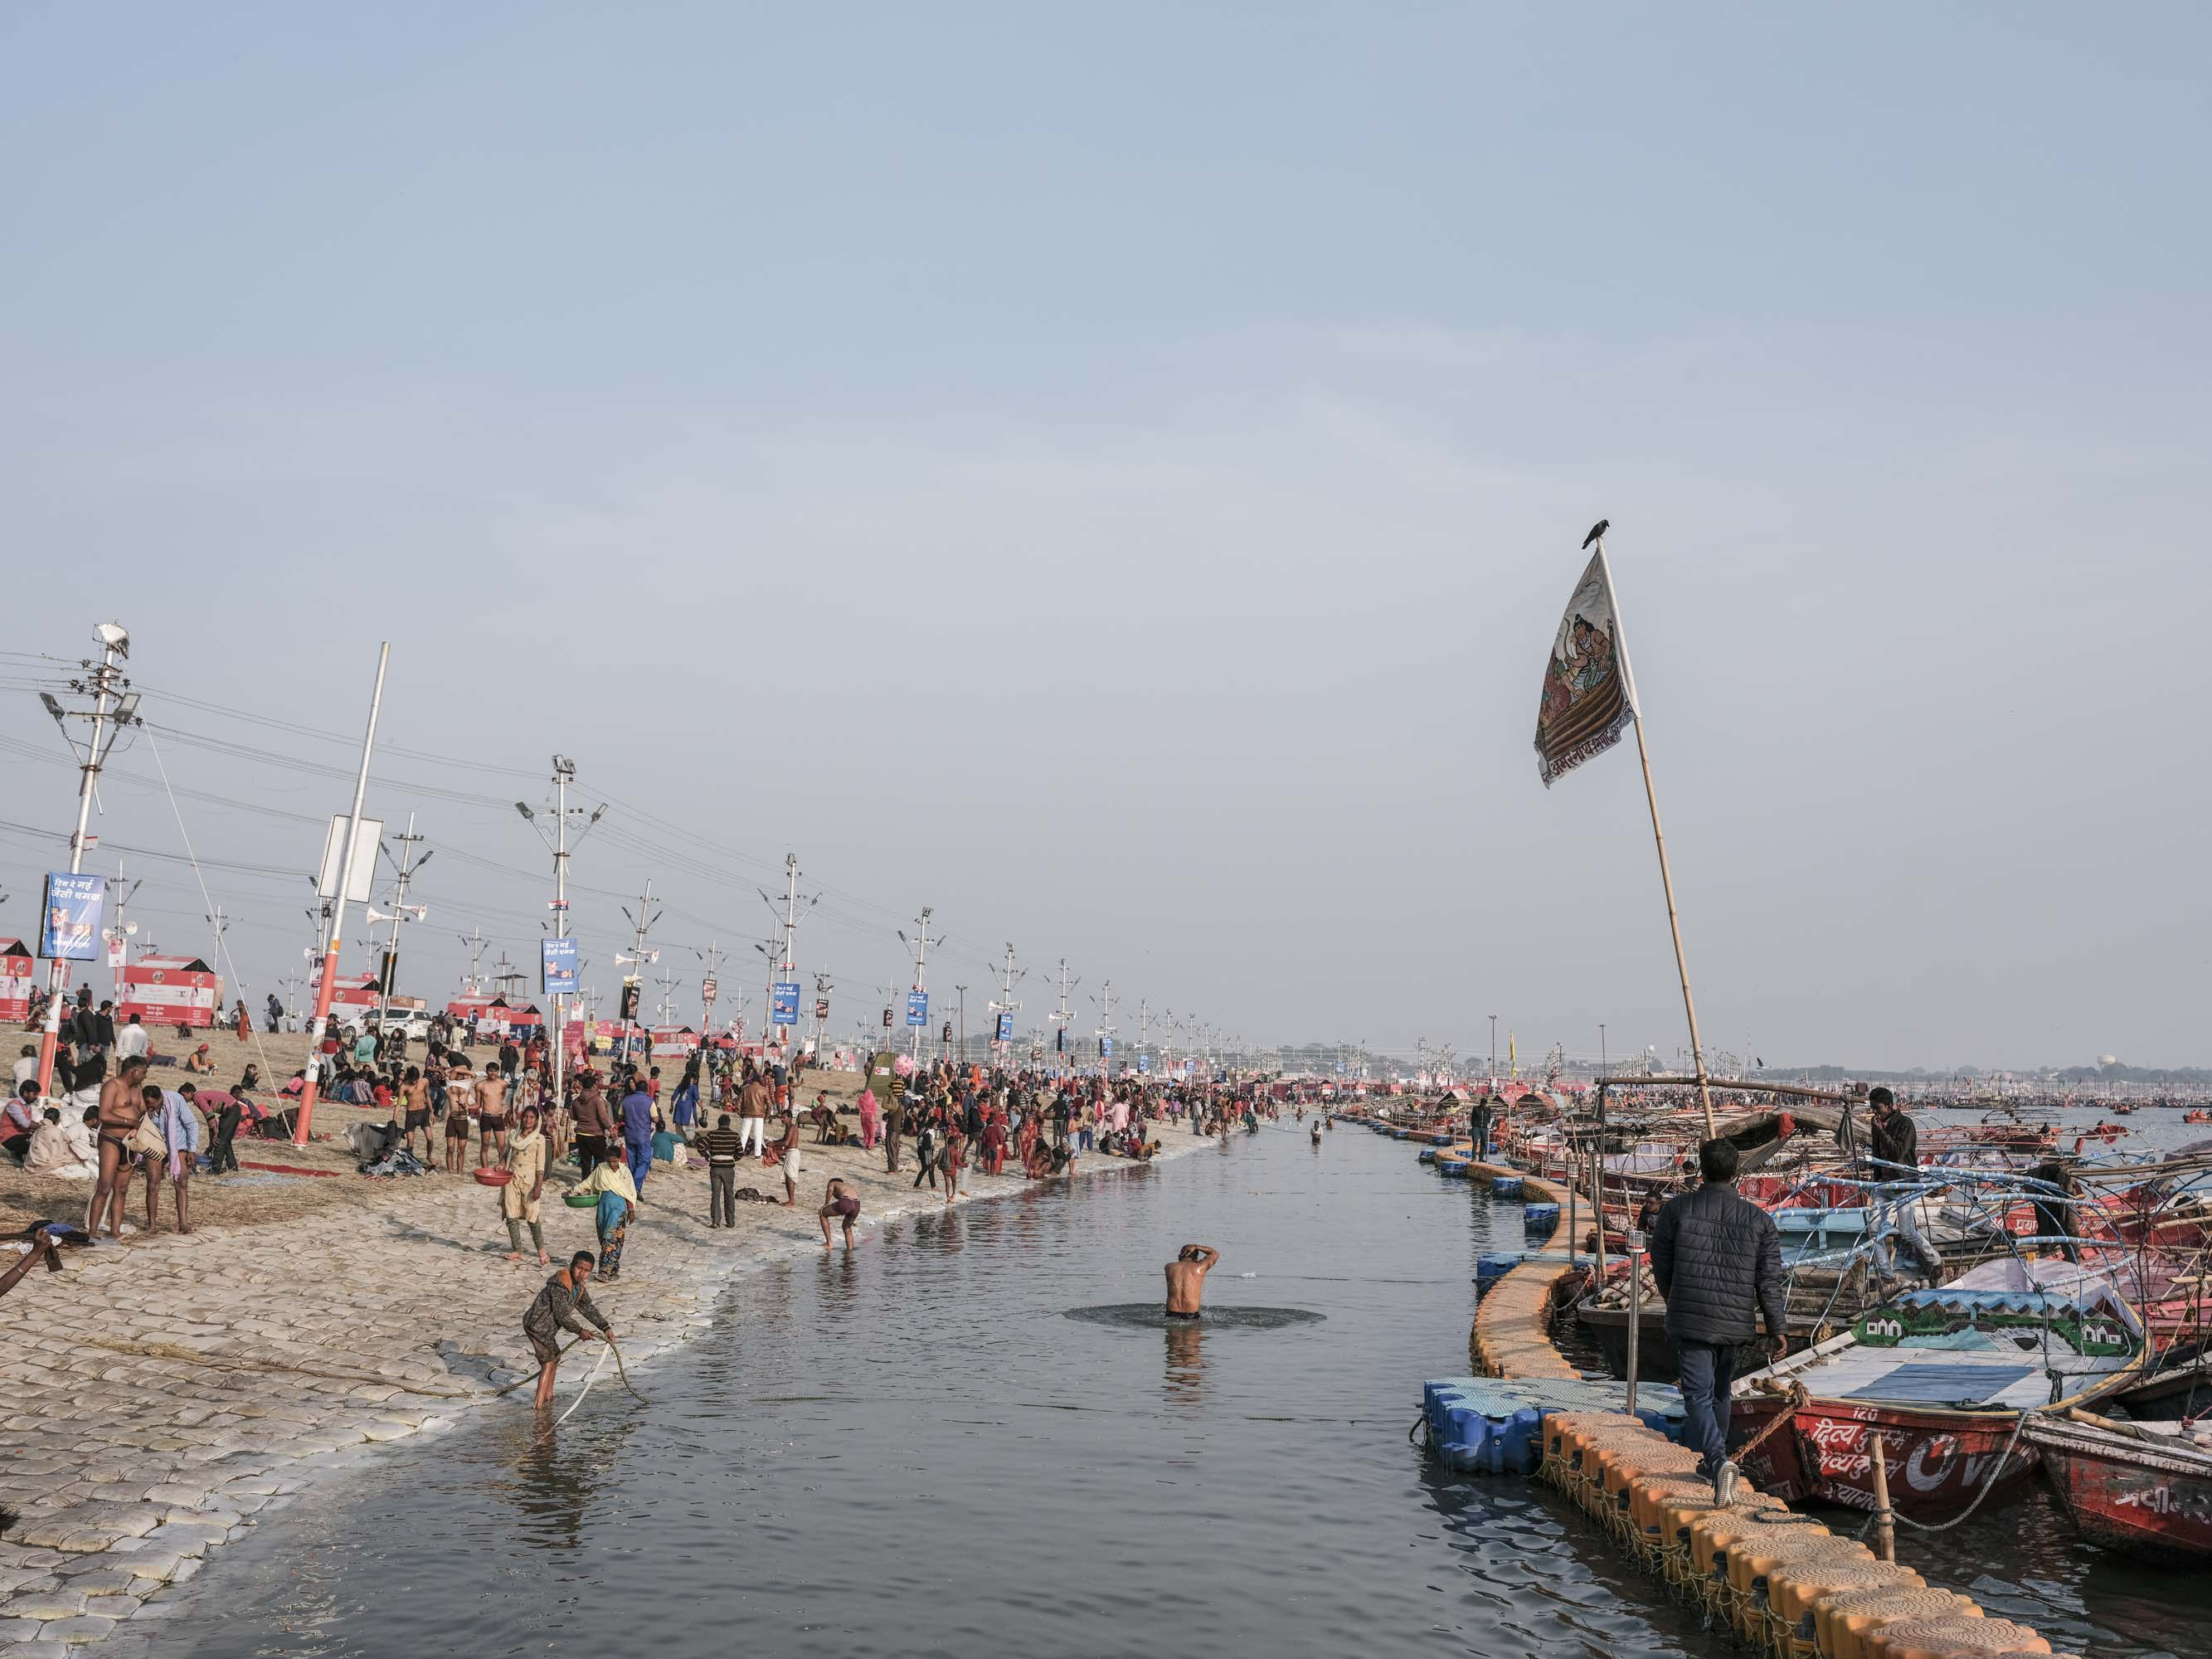 landscape view pilgrims Kumbh mela 2019 India Allahabad Prayagraj Ardh hindu religious Festival event rivers photographer jose jeuland photography